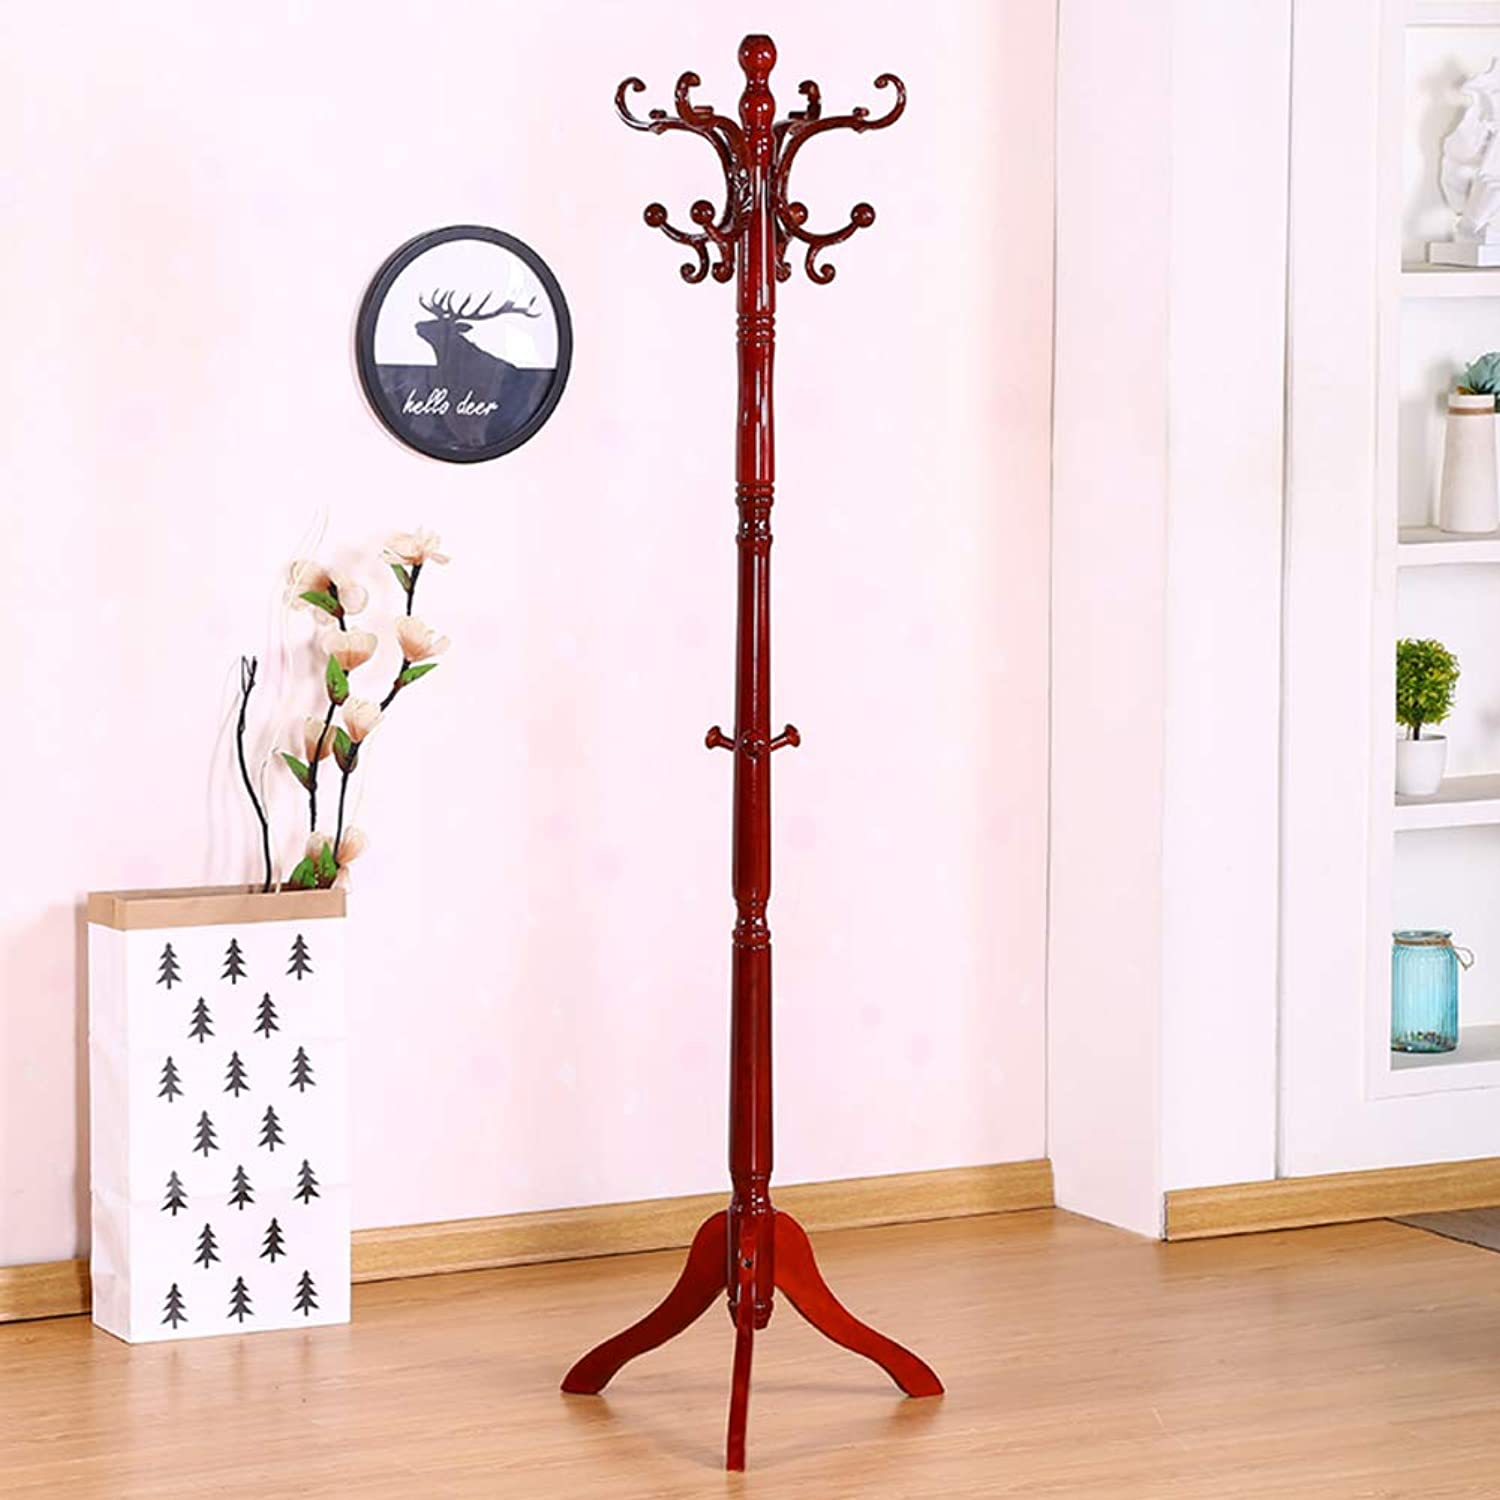 Solid Wood Coat Rack,Simple Free Standing Coat Tree,Perfect Touch for Your entryway Bedroom Kitchen Bathroom More-C 48x180cm(19x71inch)